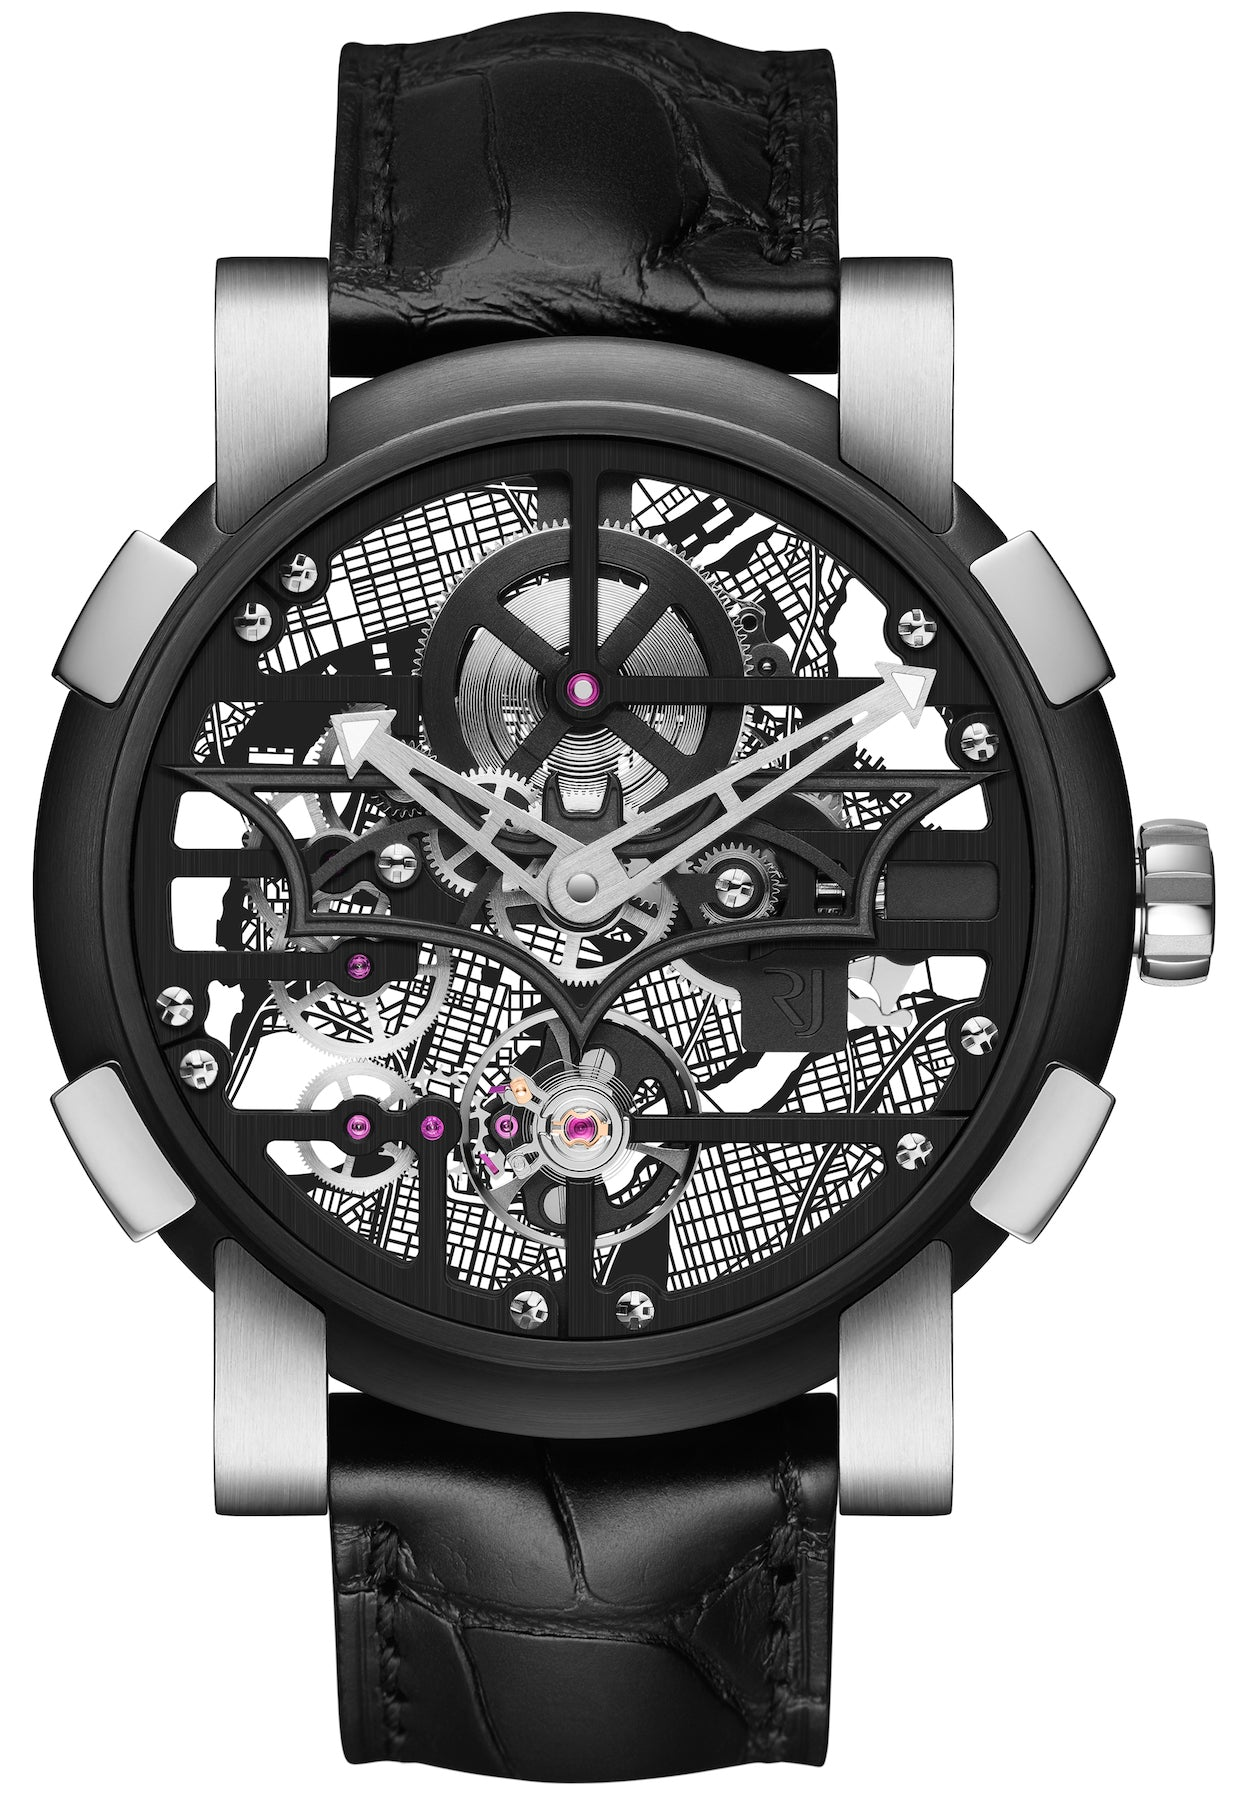 RJ Watches Skylab Batman Limited Edition D